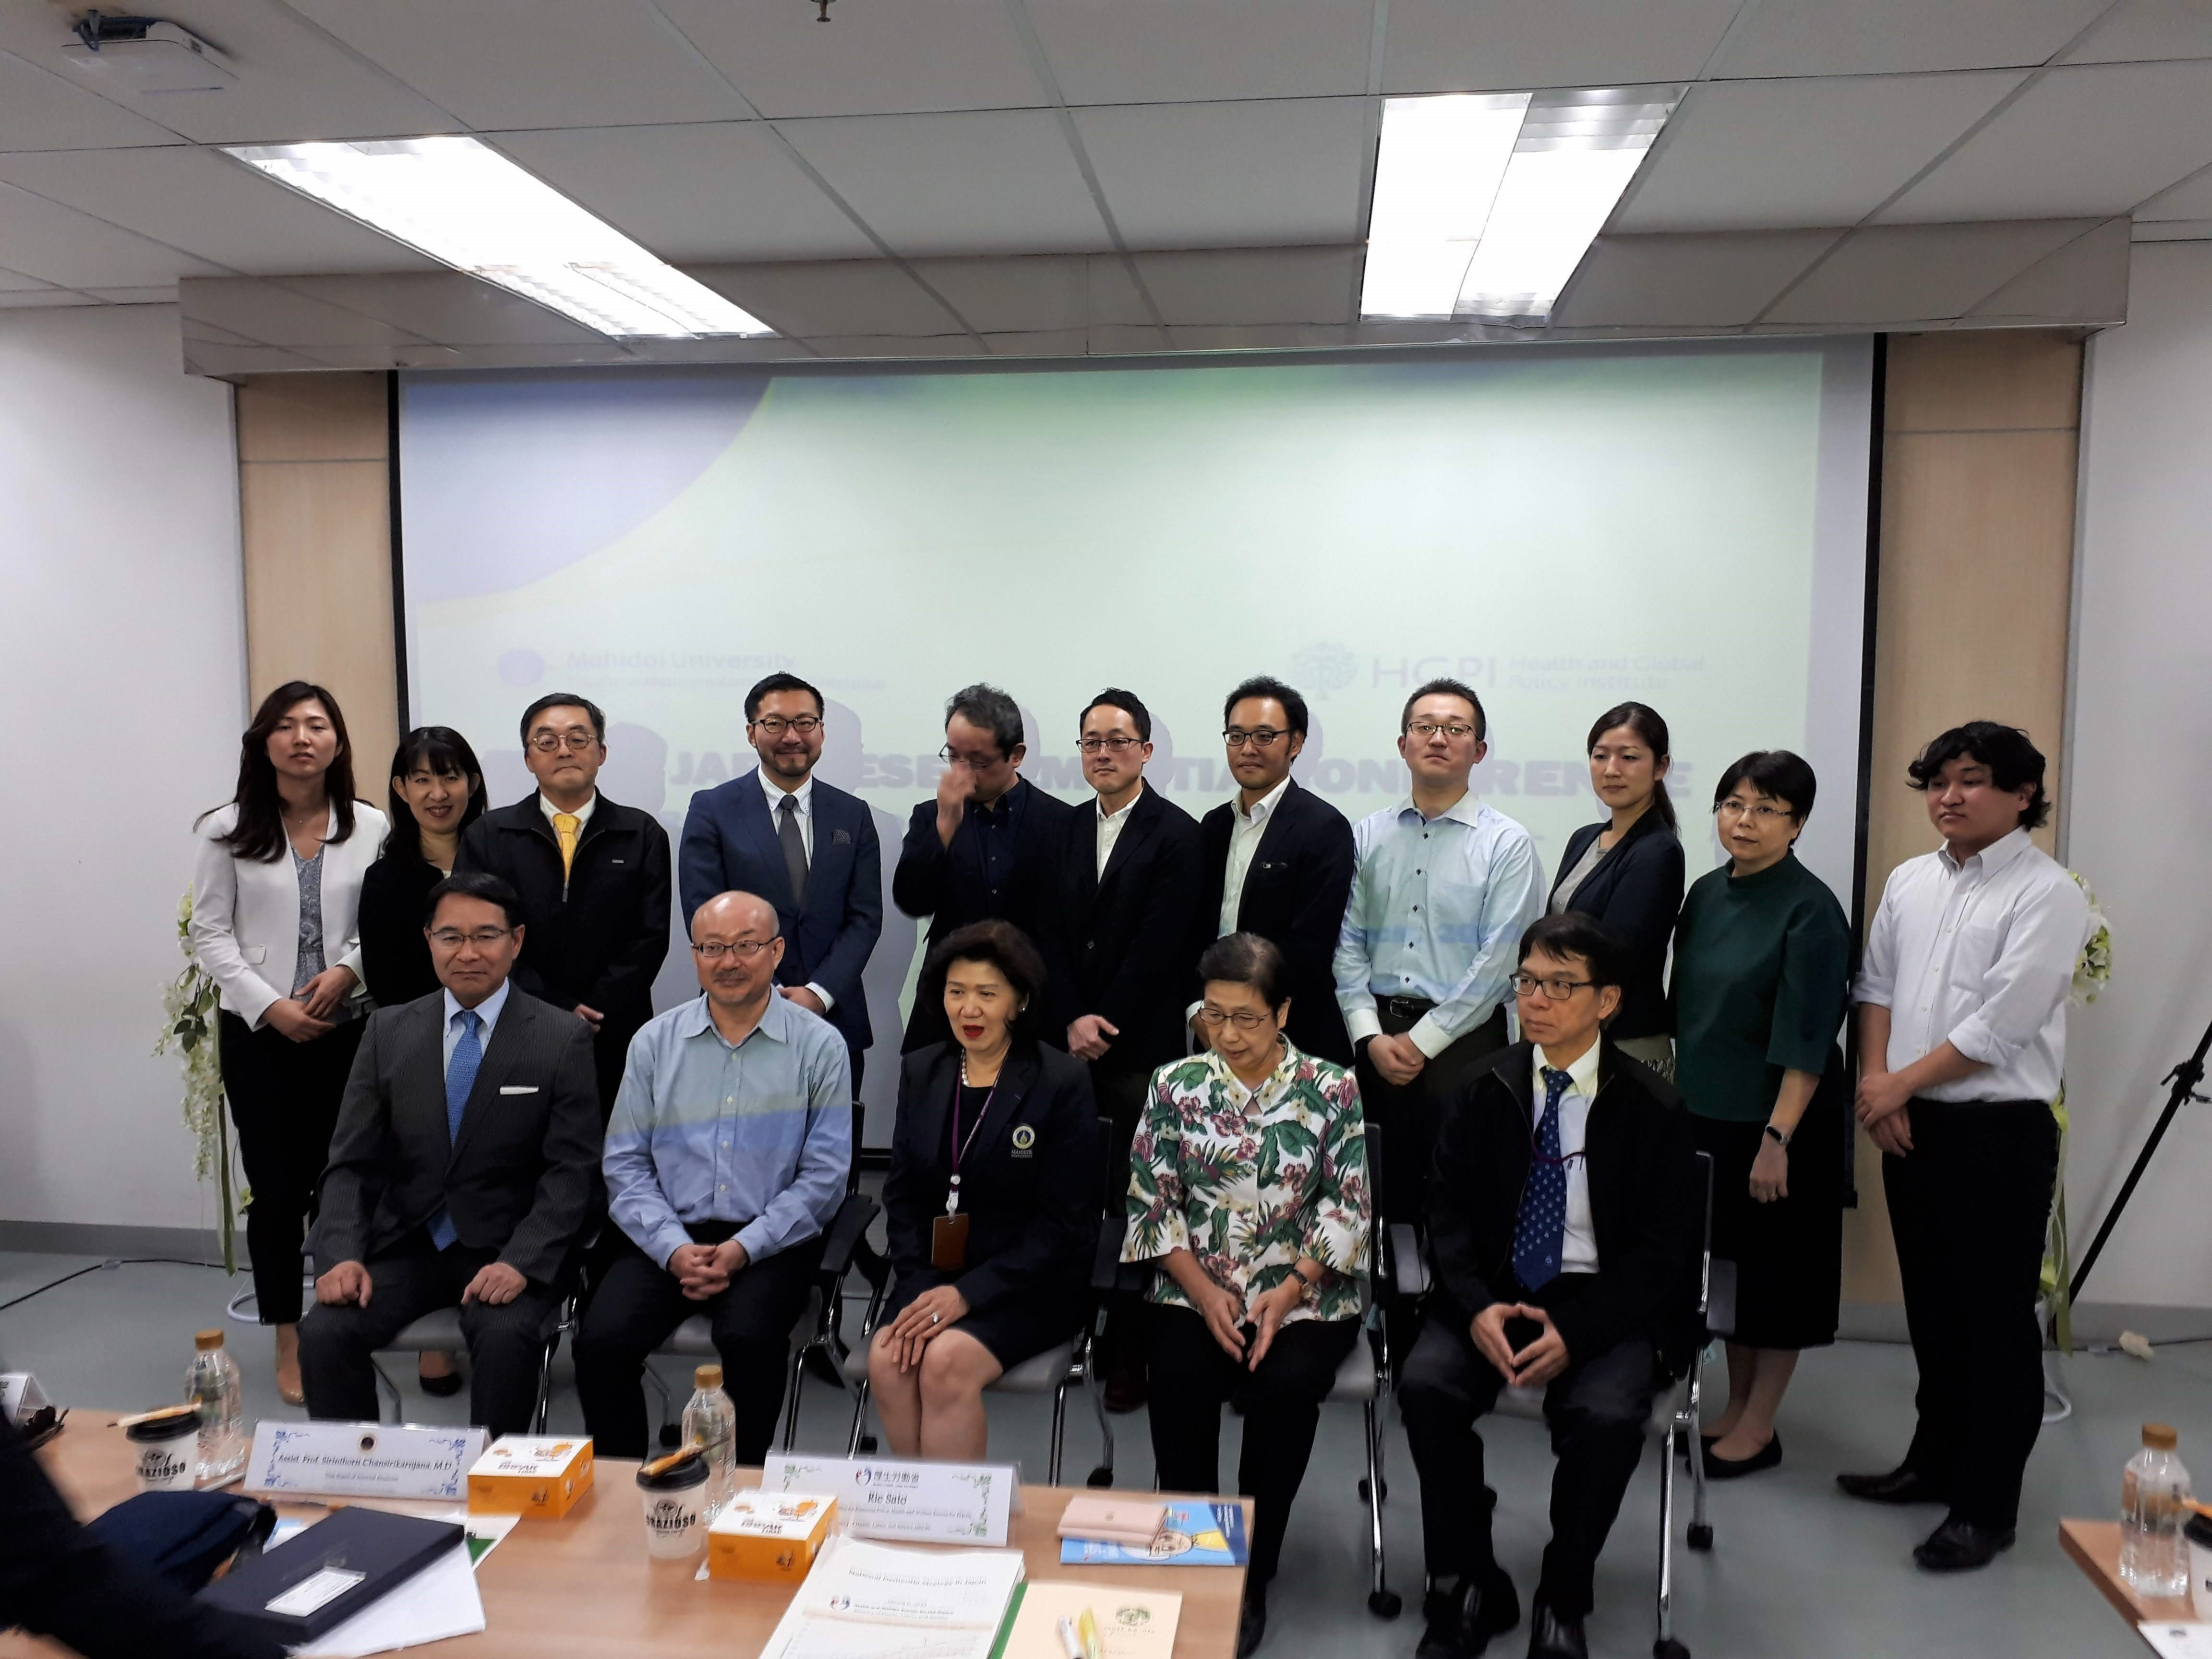 [Event Report] Thailand – Japan Dementia Conference -Redesigning Dementia for People with Dementia- (March 6, 2019, Faculty of Medicine Ramathibodi Hospital, Mahidol University, Thailand)